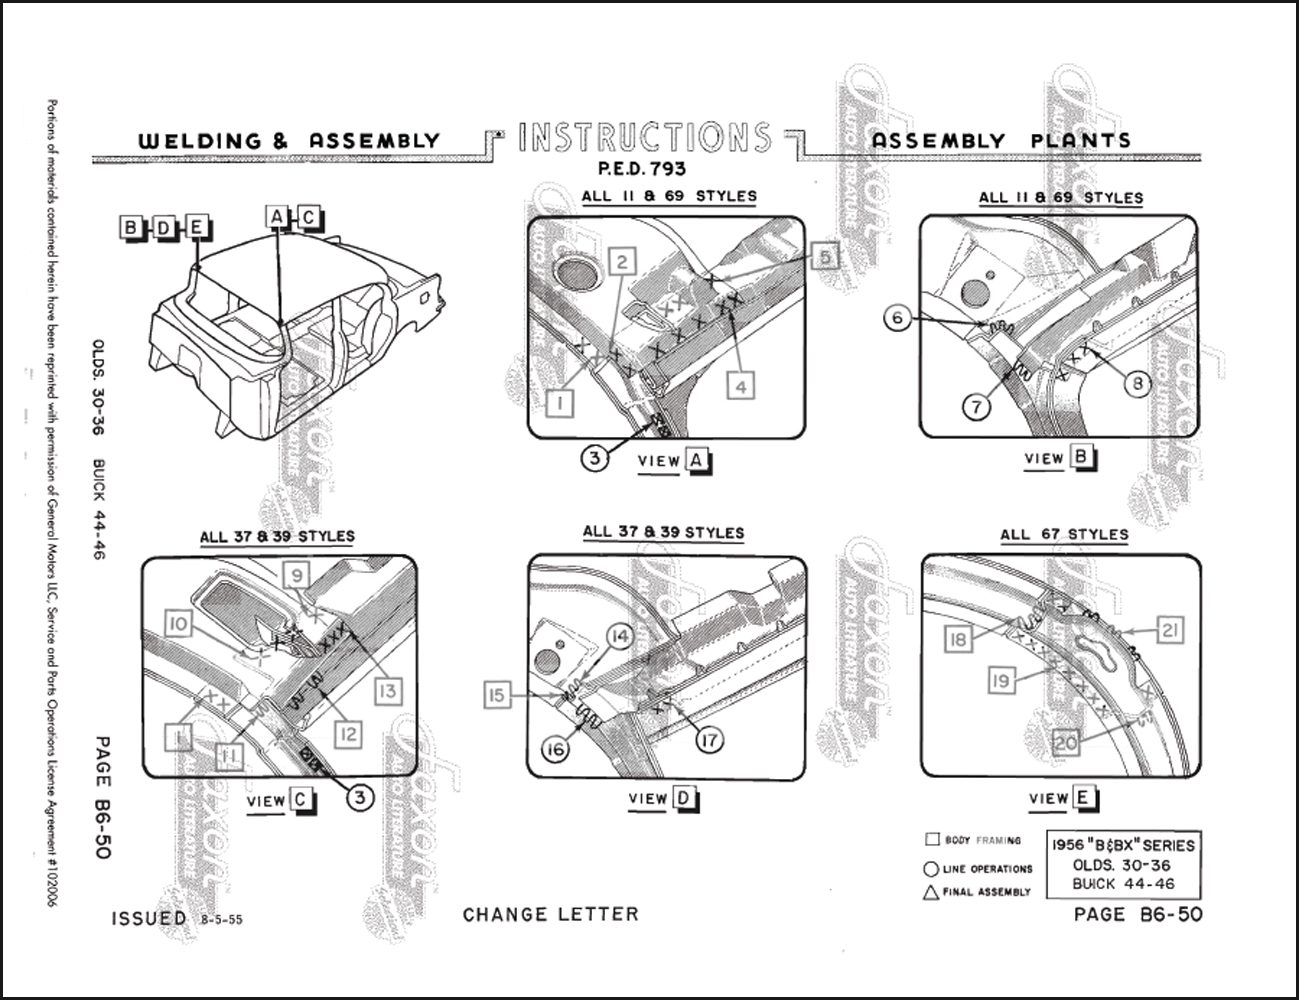 1956 body welding assembly manual reprint olds 88/98 buick special, Wiring diagram